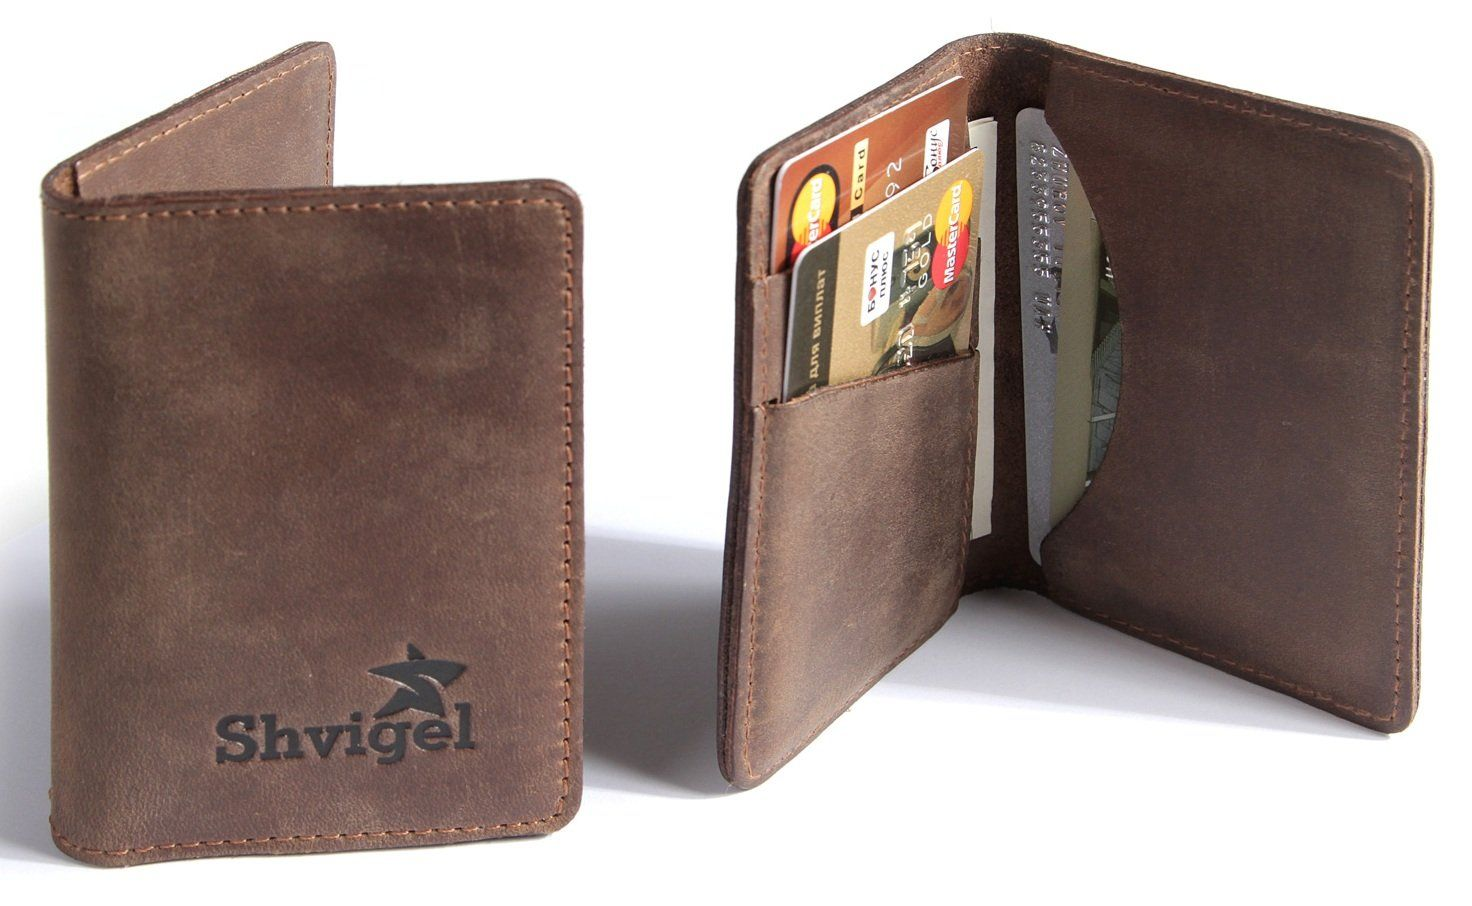 Amazon.com: Shvigel Credit Card Holder - Leather Slim Wallet Case ...